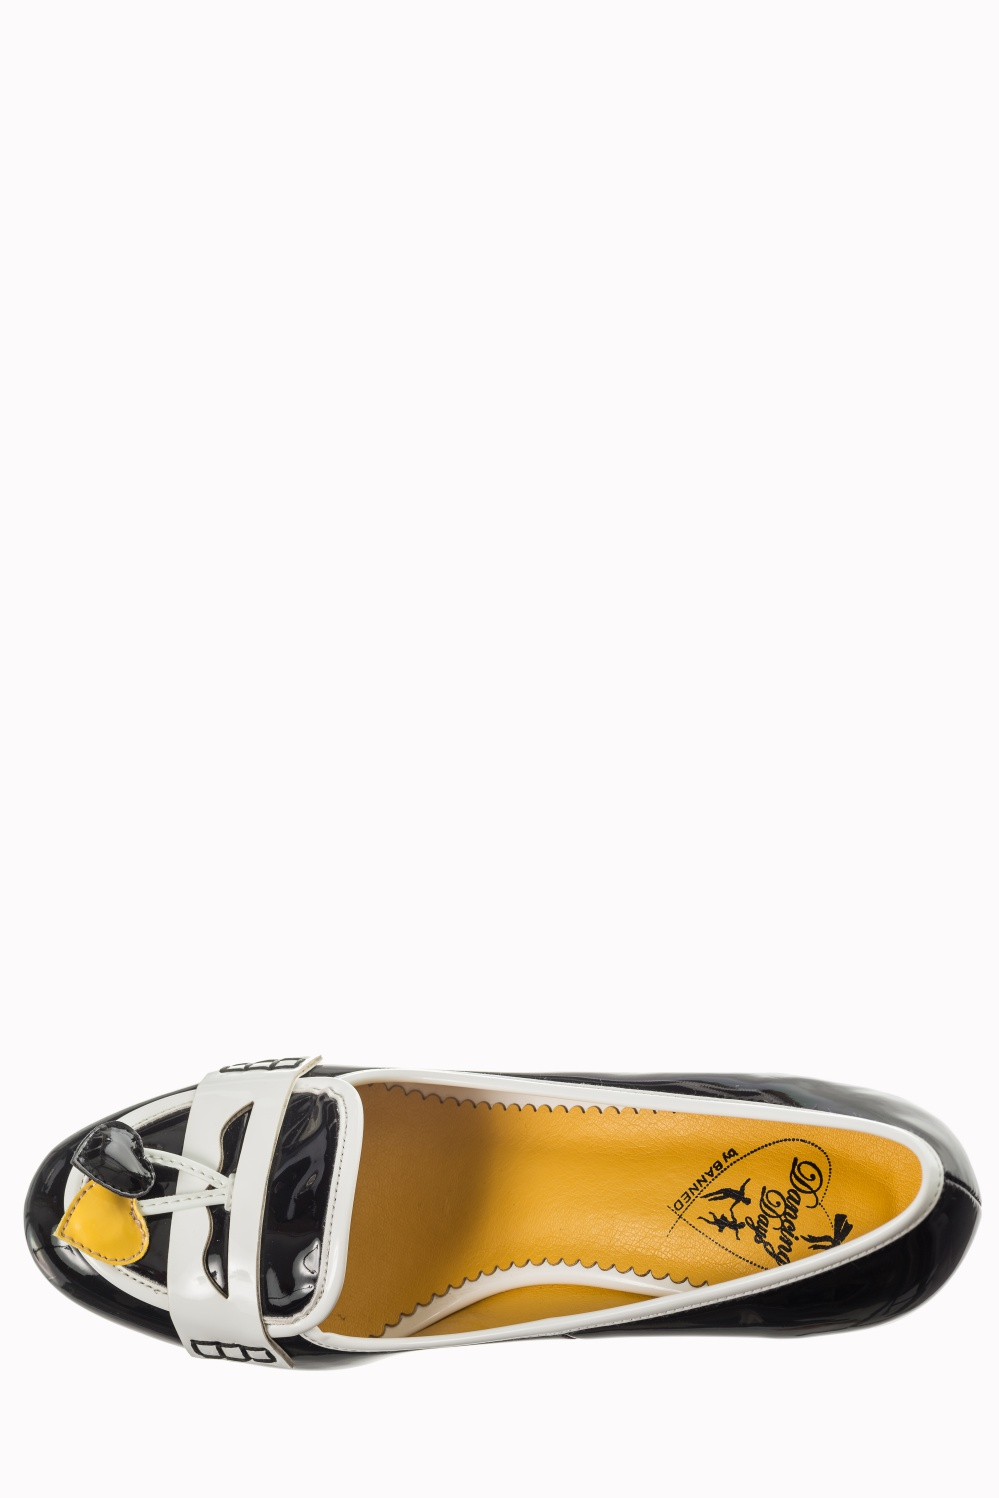 Dancing Days Lust For Life Black Mustard 60s Loafer Shoes